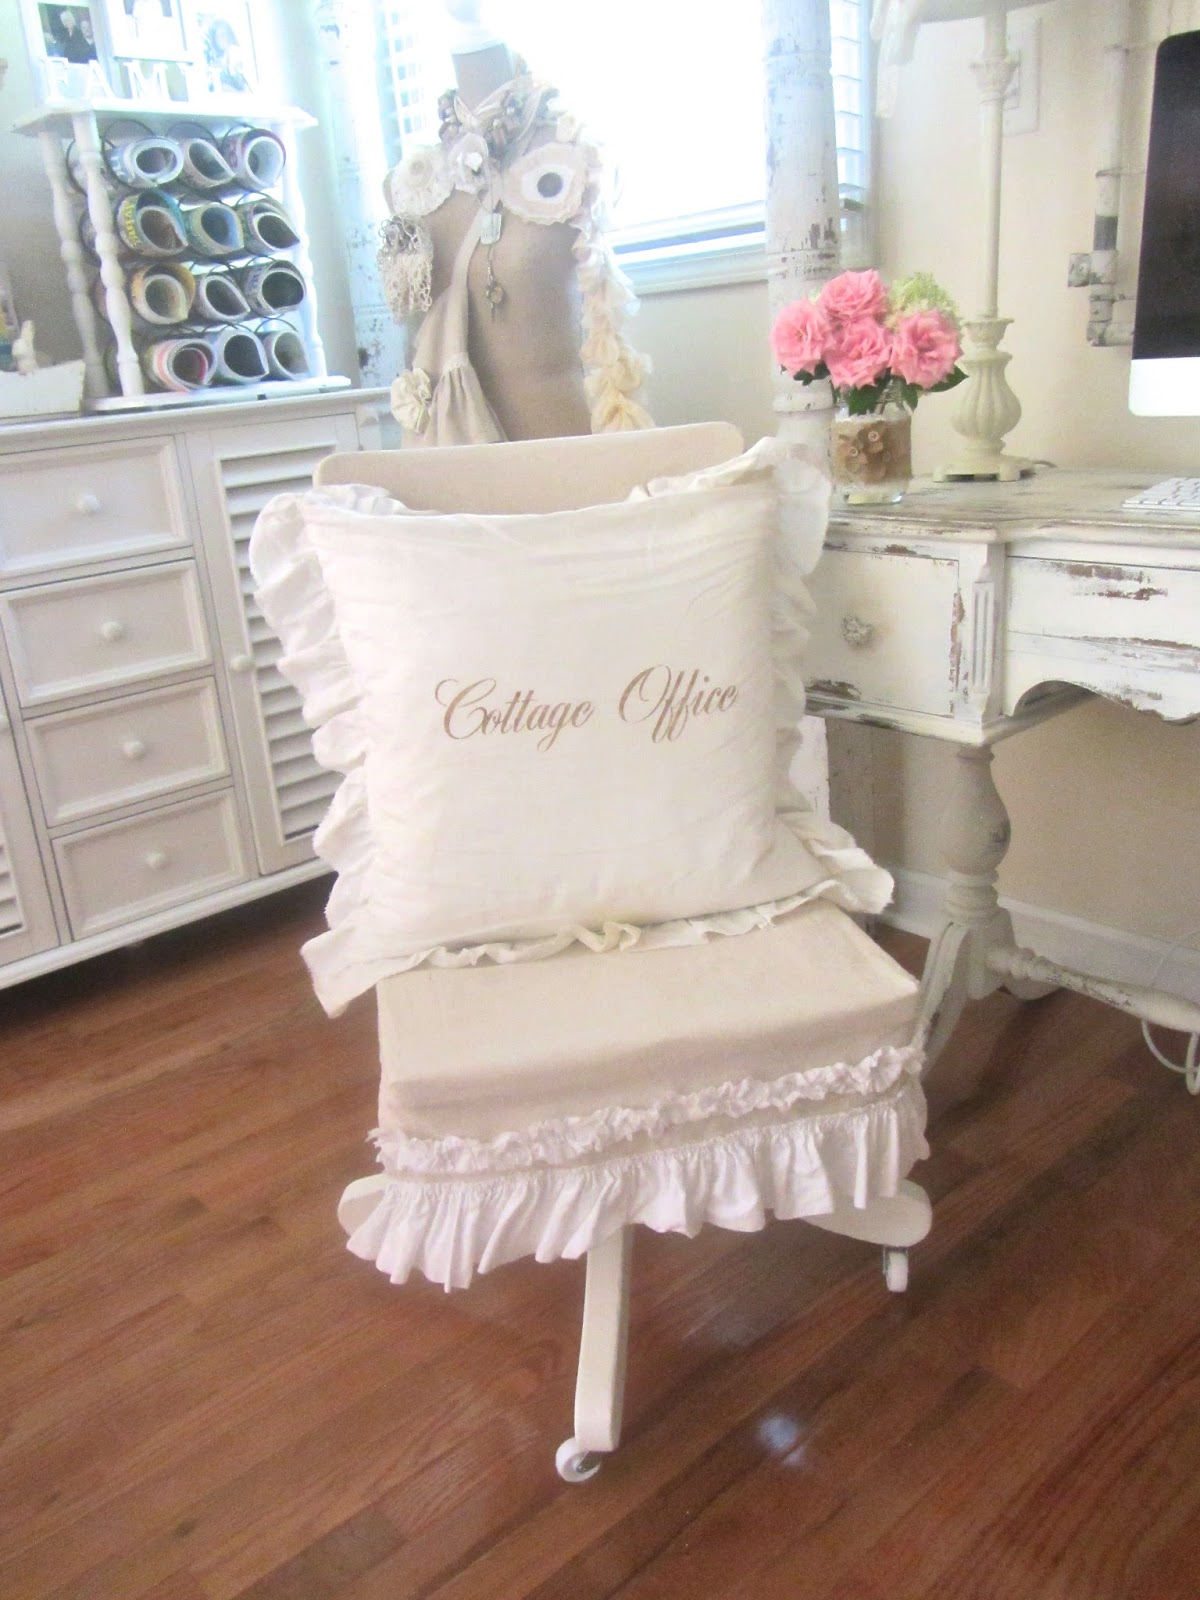 Cute Comfortable Desk Chairs Junk Chic Cottage Office Chair Updo And A Sneak Peek At